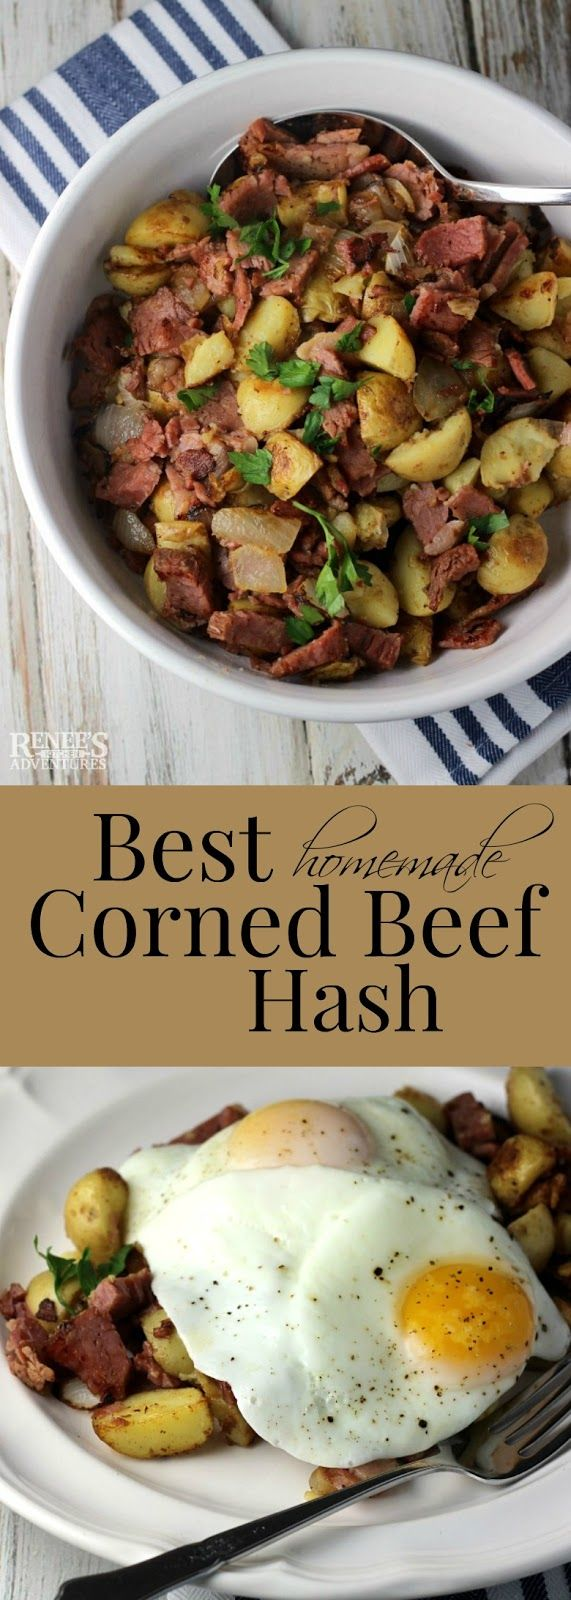 Best Corned Beef Hash | Renee's Kitchen Adventures - easy recipe for homemade corned beef hash. Great for leftovers. Makes a good breakfast, lunch or dinner.